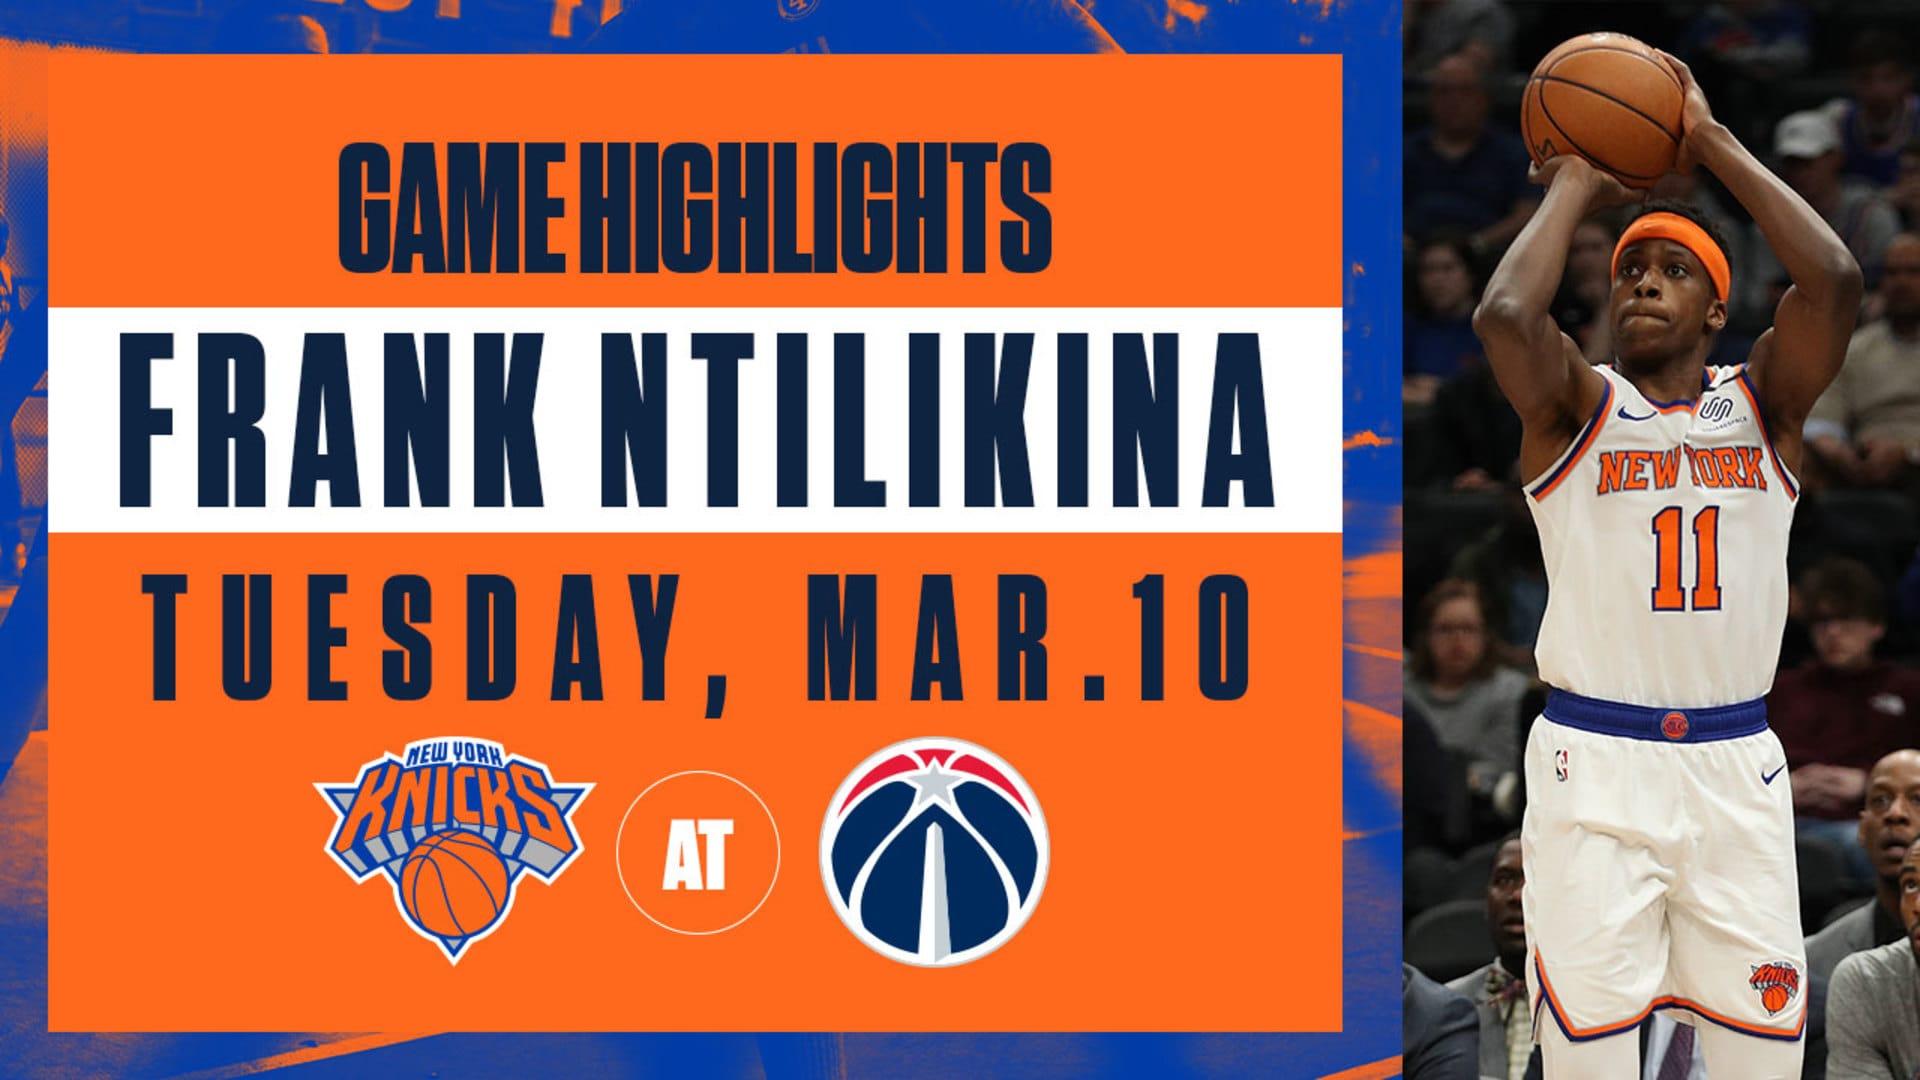 Highlights: Frank Ntilikina (20 Pts / 10 Ast) | Knicks @ Wizards